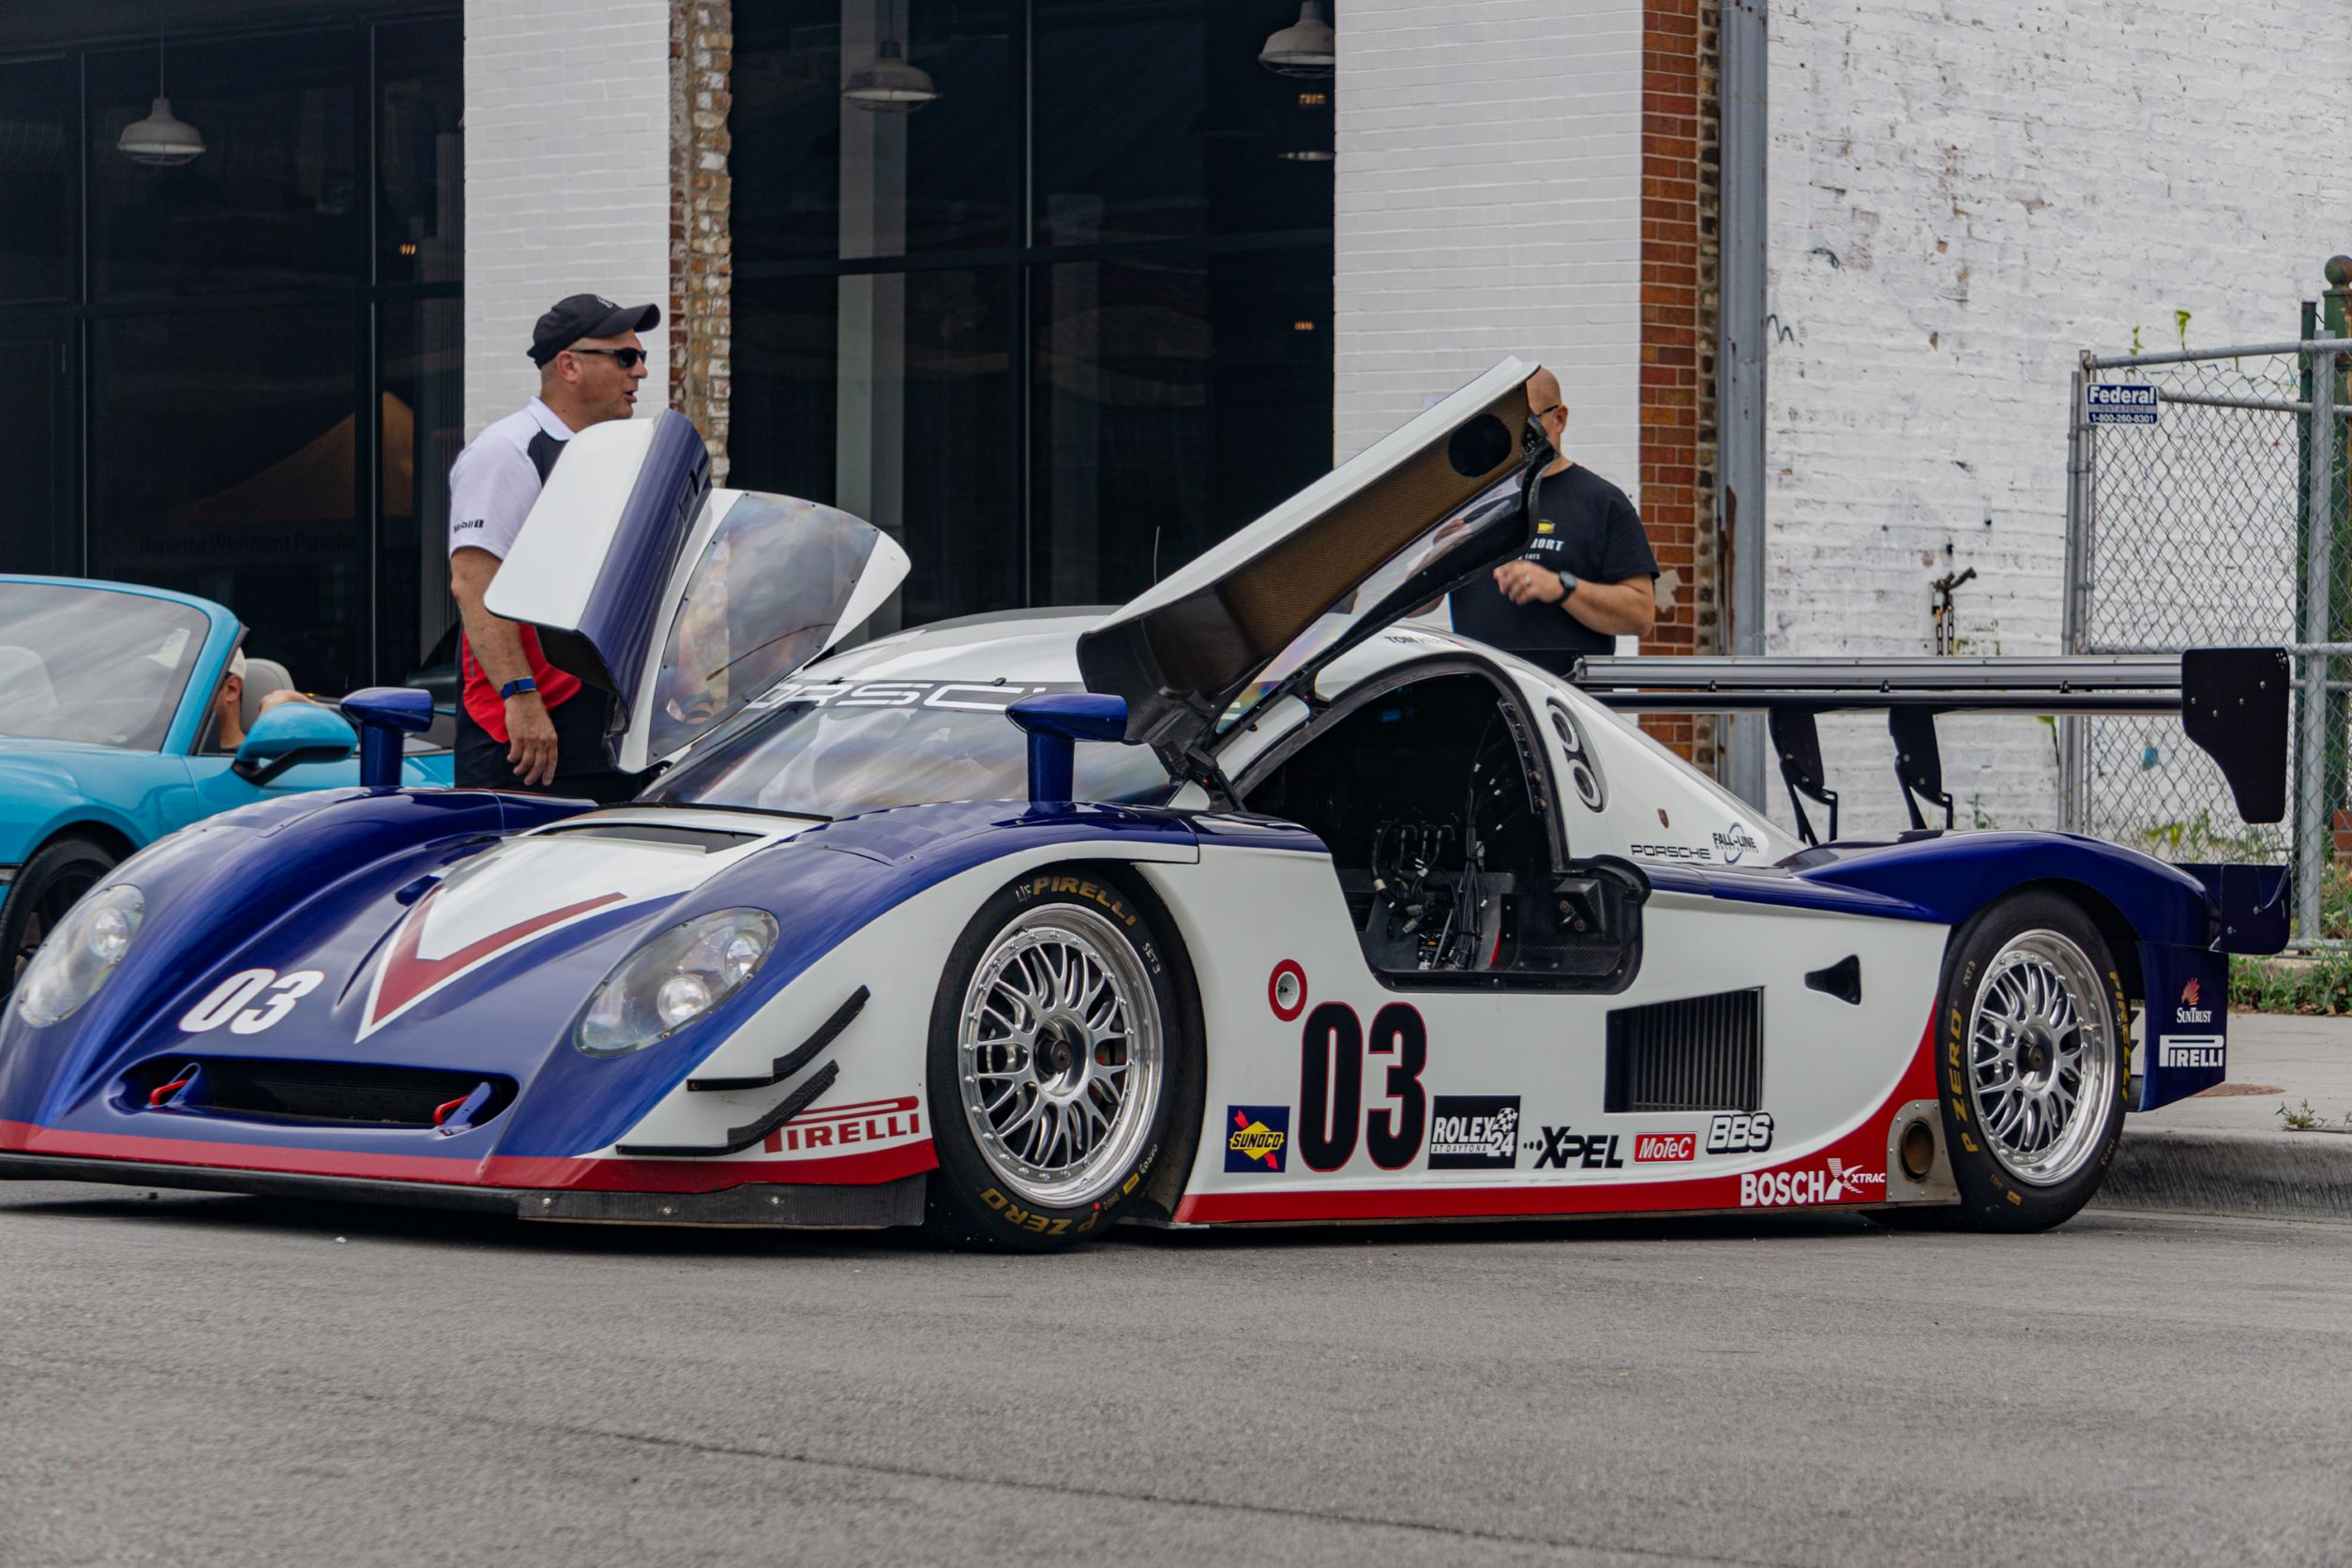 The front 3/4 view of Fall-Line Motorsports' white-blue-and-red Porsche Crawford Daytona Prototype with its left-side door open